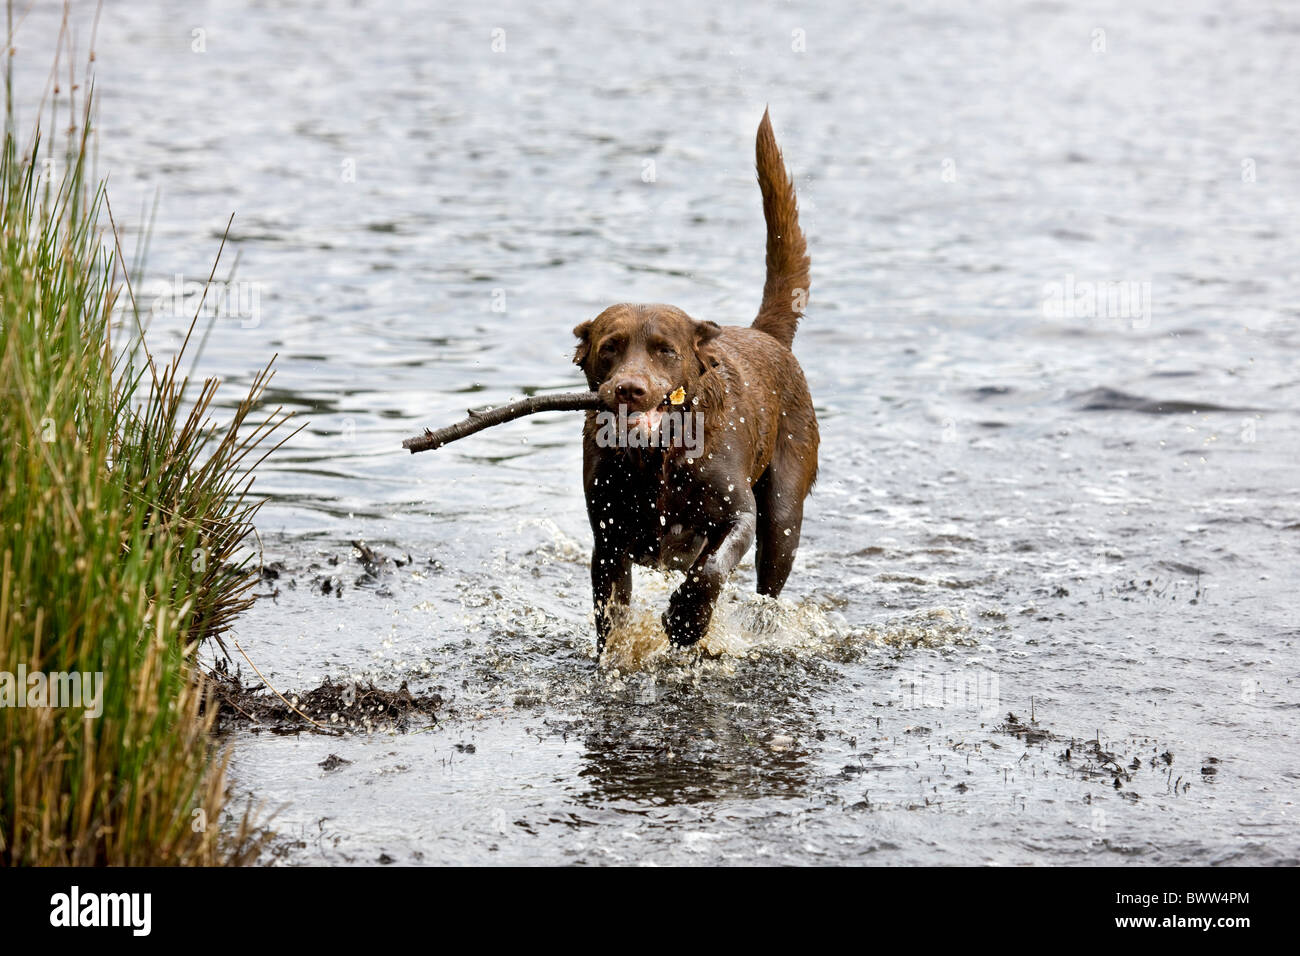 Labrador (Canis lupus familiaris) running with stick through water Stock Photo